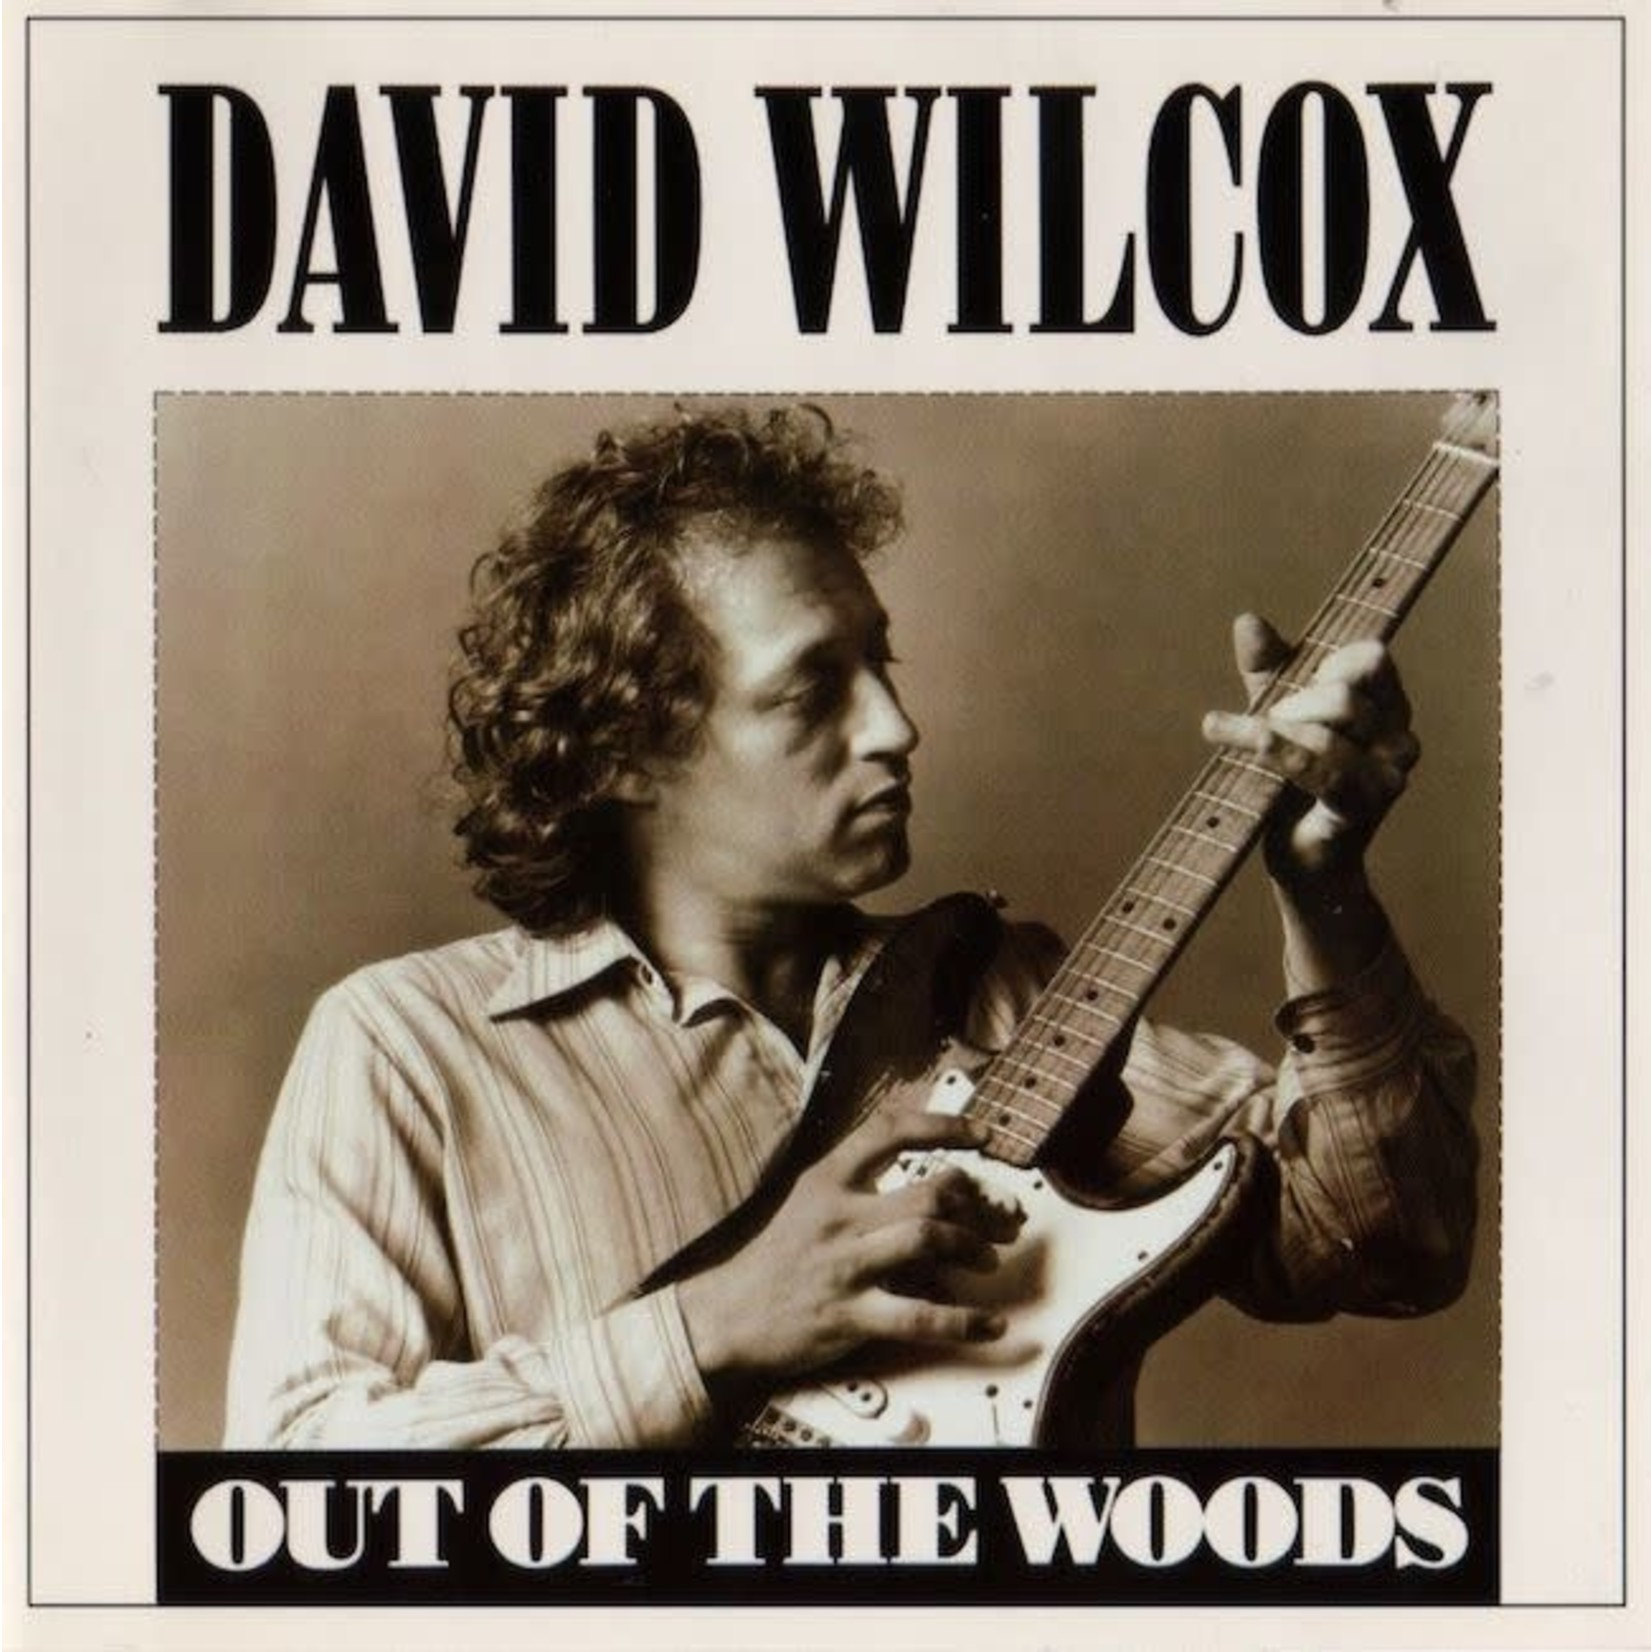 [Vintage] Wilcox, David: Out of the Woods